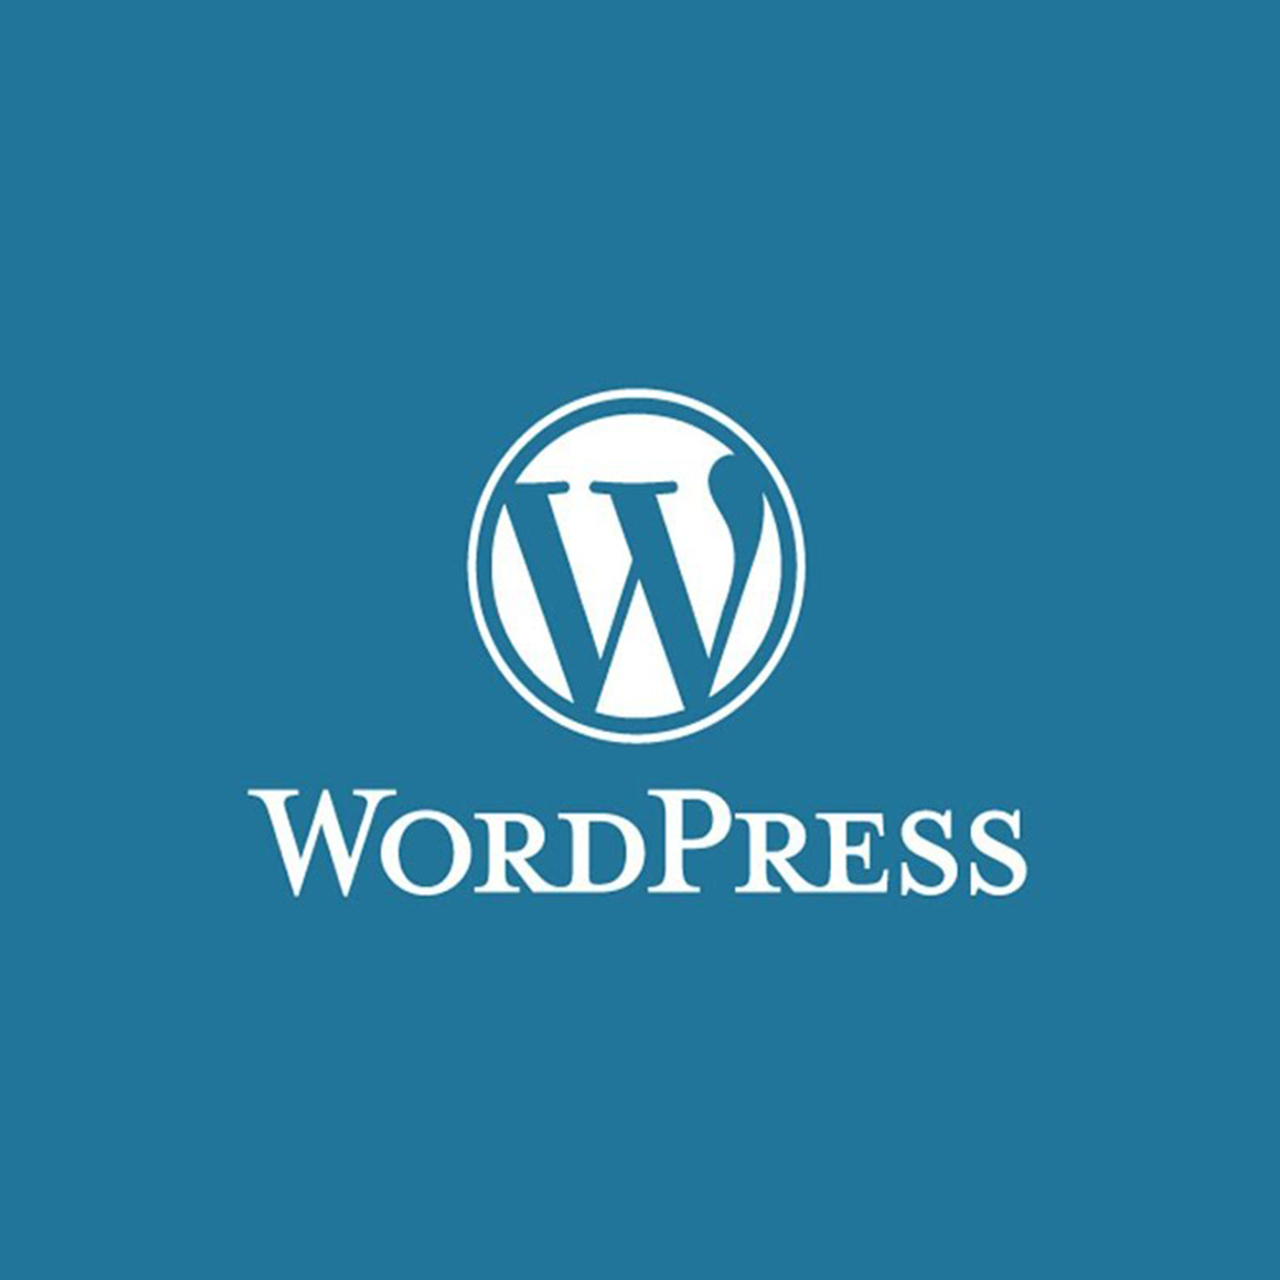 wordpress website logo square